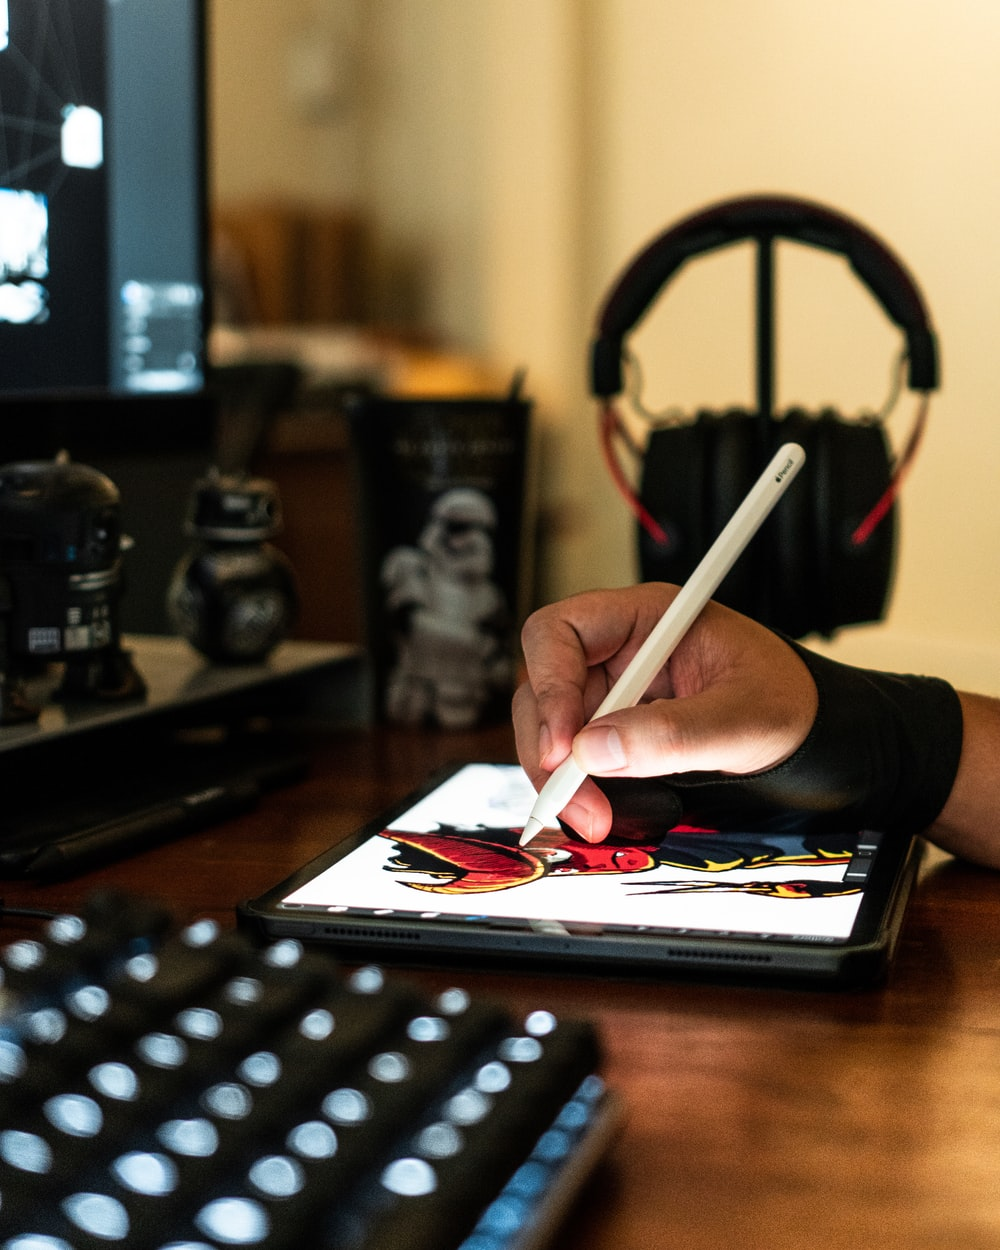 close-up photography of person drawing on tablet computer